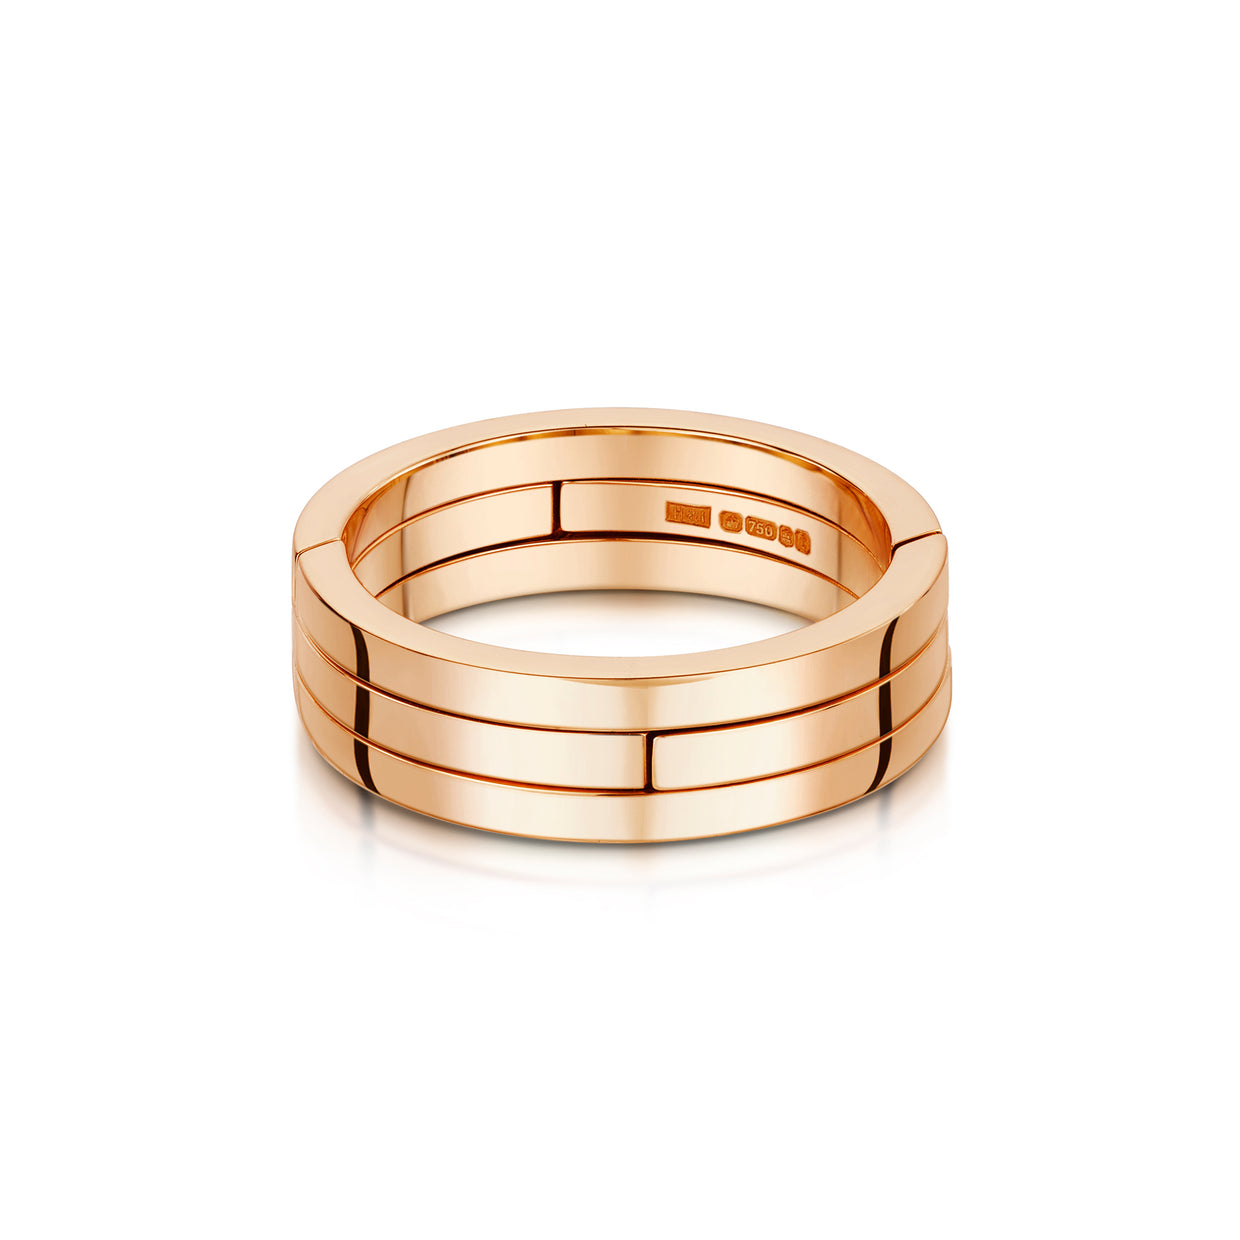 Collapsable Picture Ring in 18ct Rose Gold-Hamilton & Inches